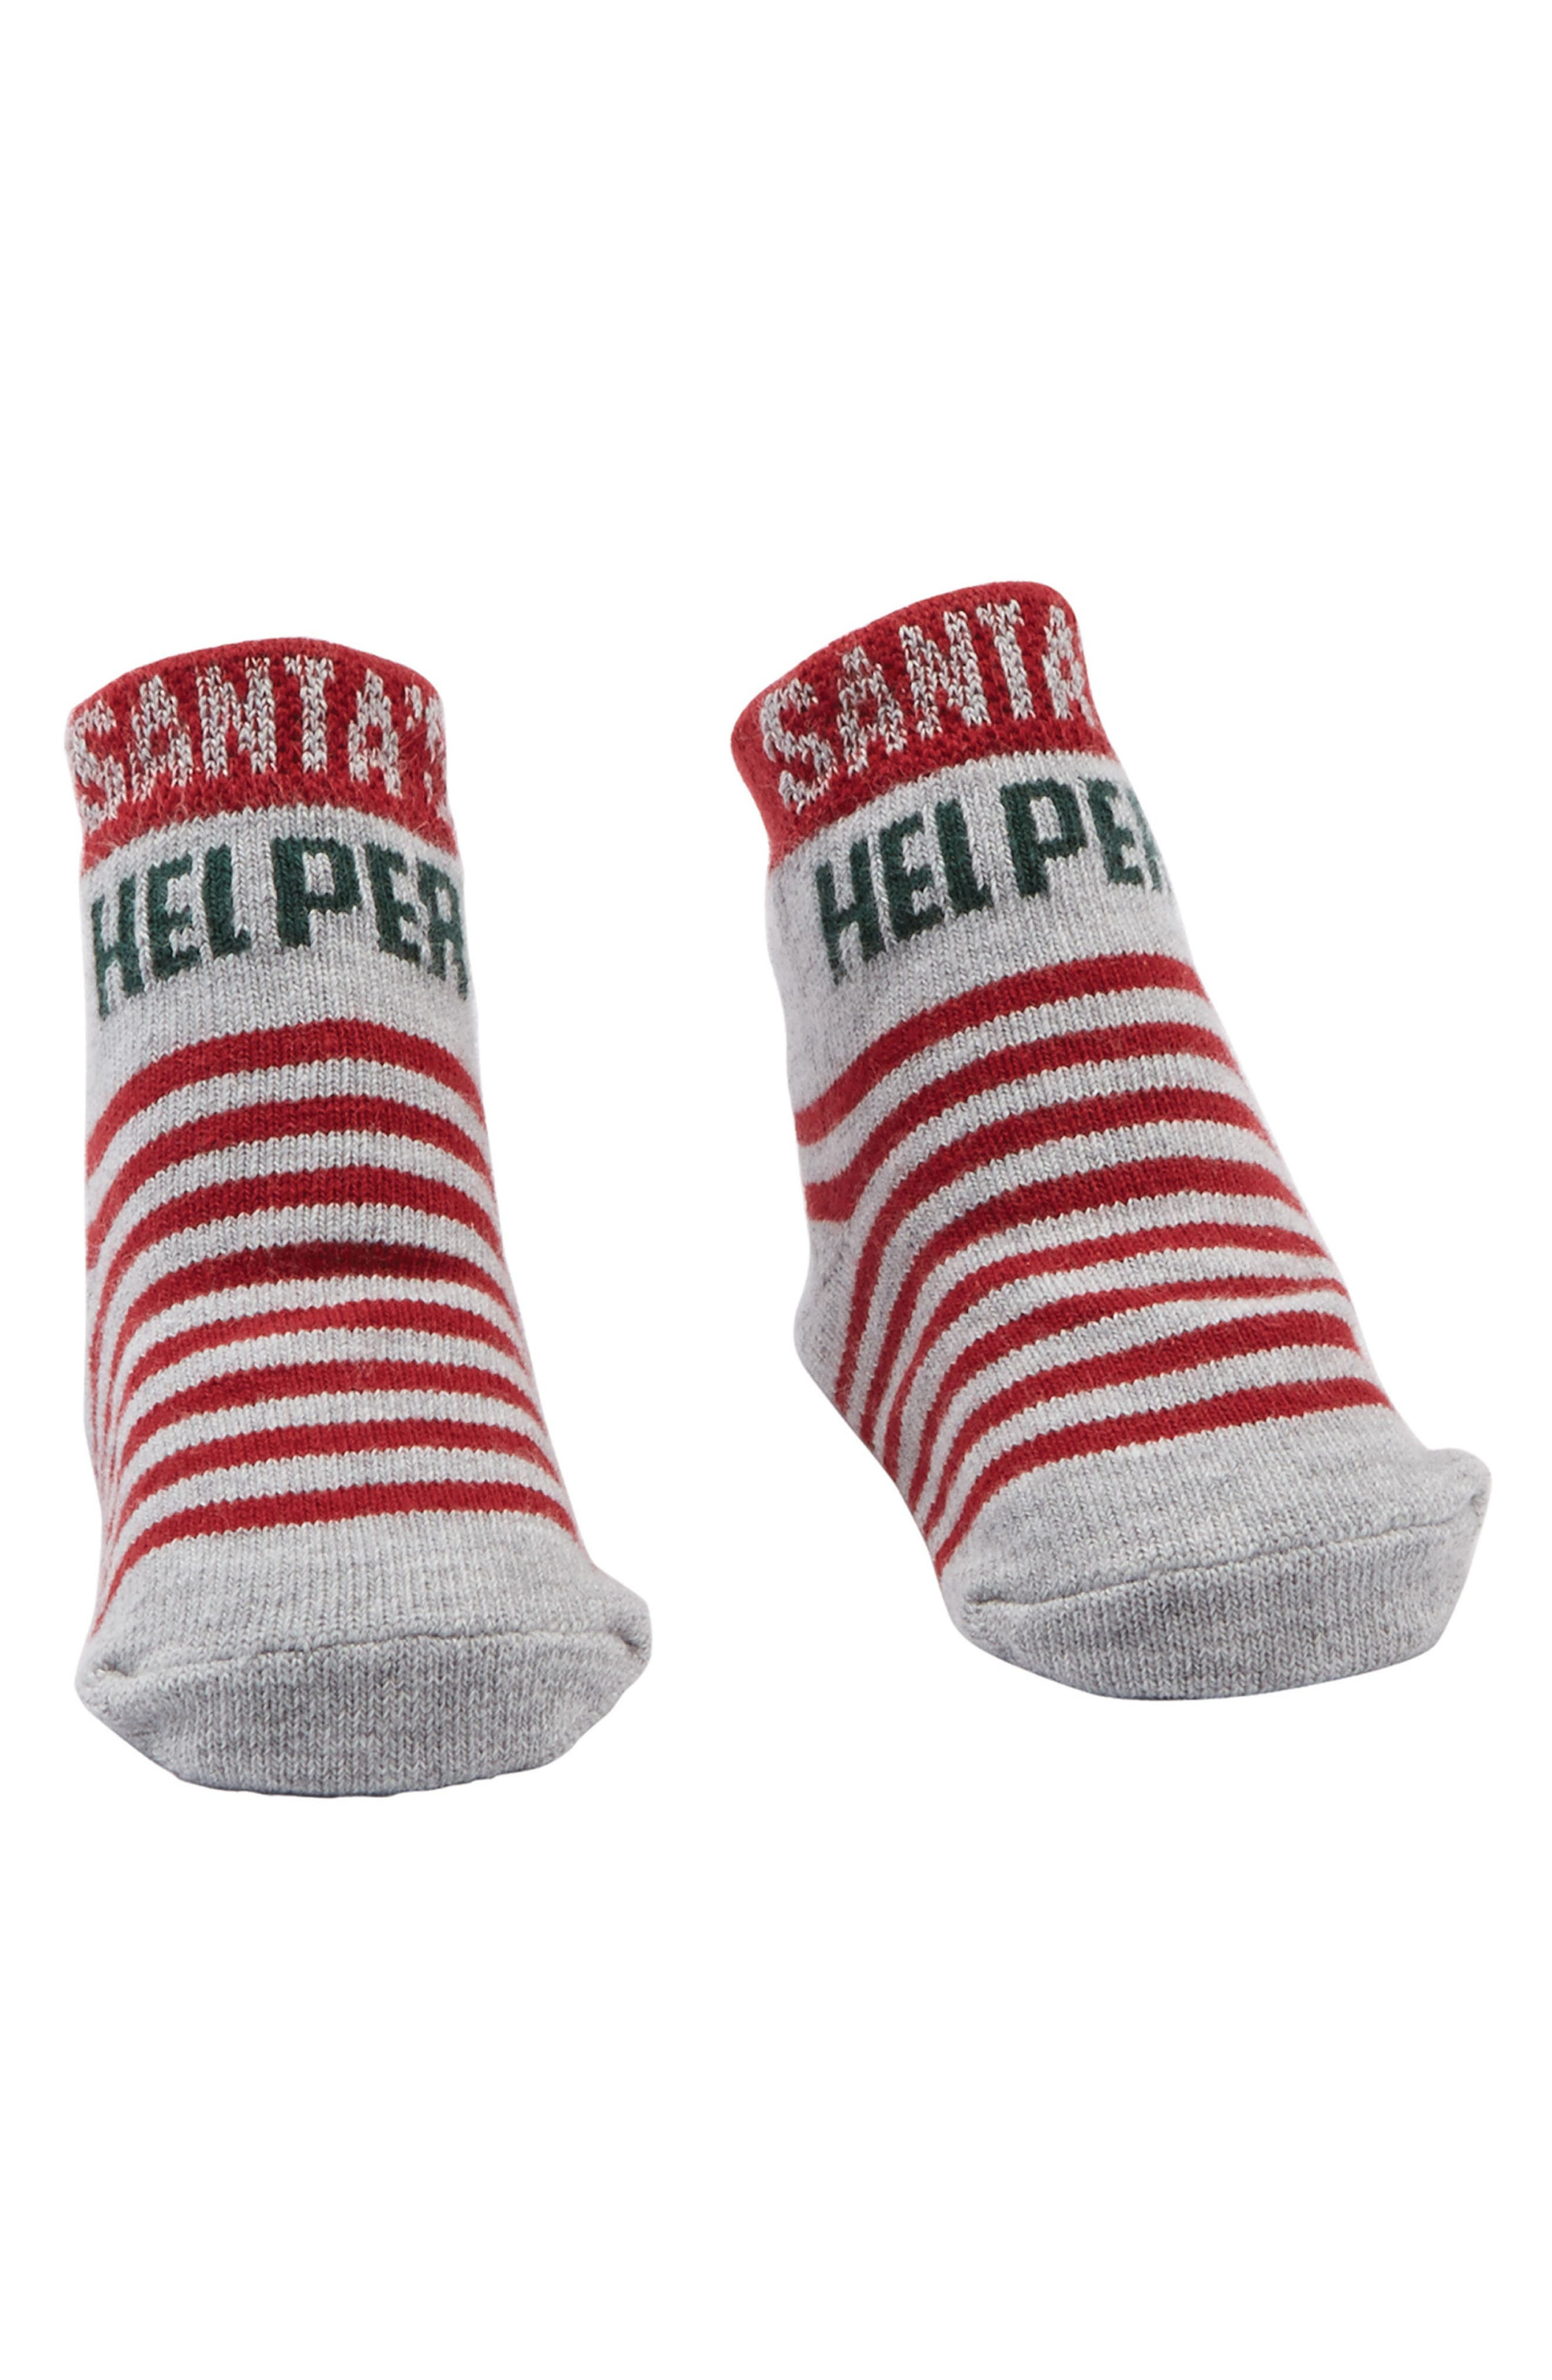 Mud Pie Santa's Helper Socks